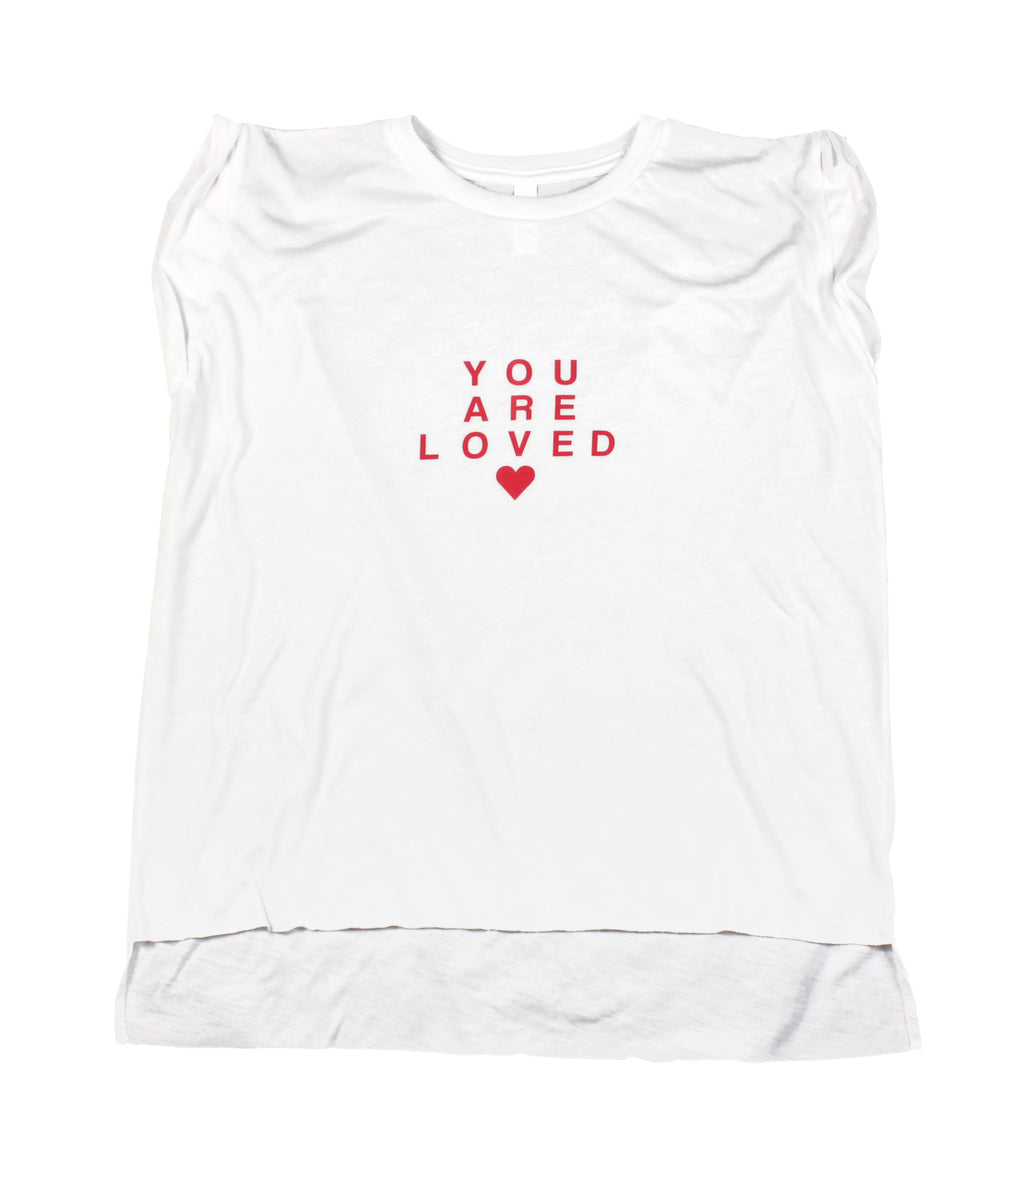 YOU ARE LOVED RED LETTER WOMEN'S MUSCLE T-SHIRT